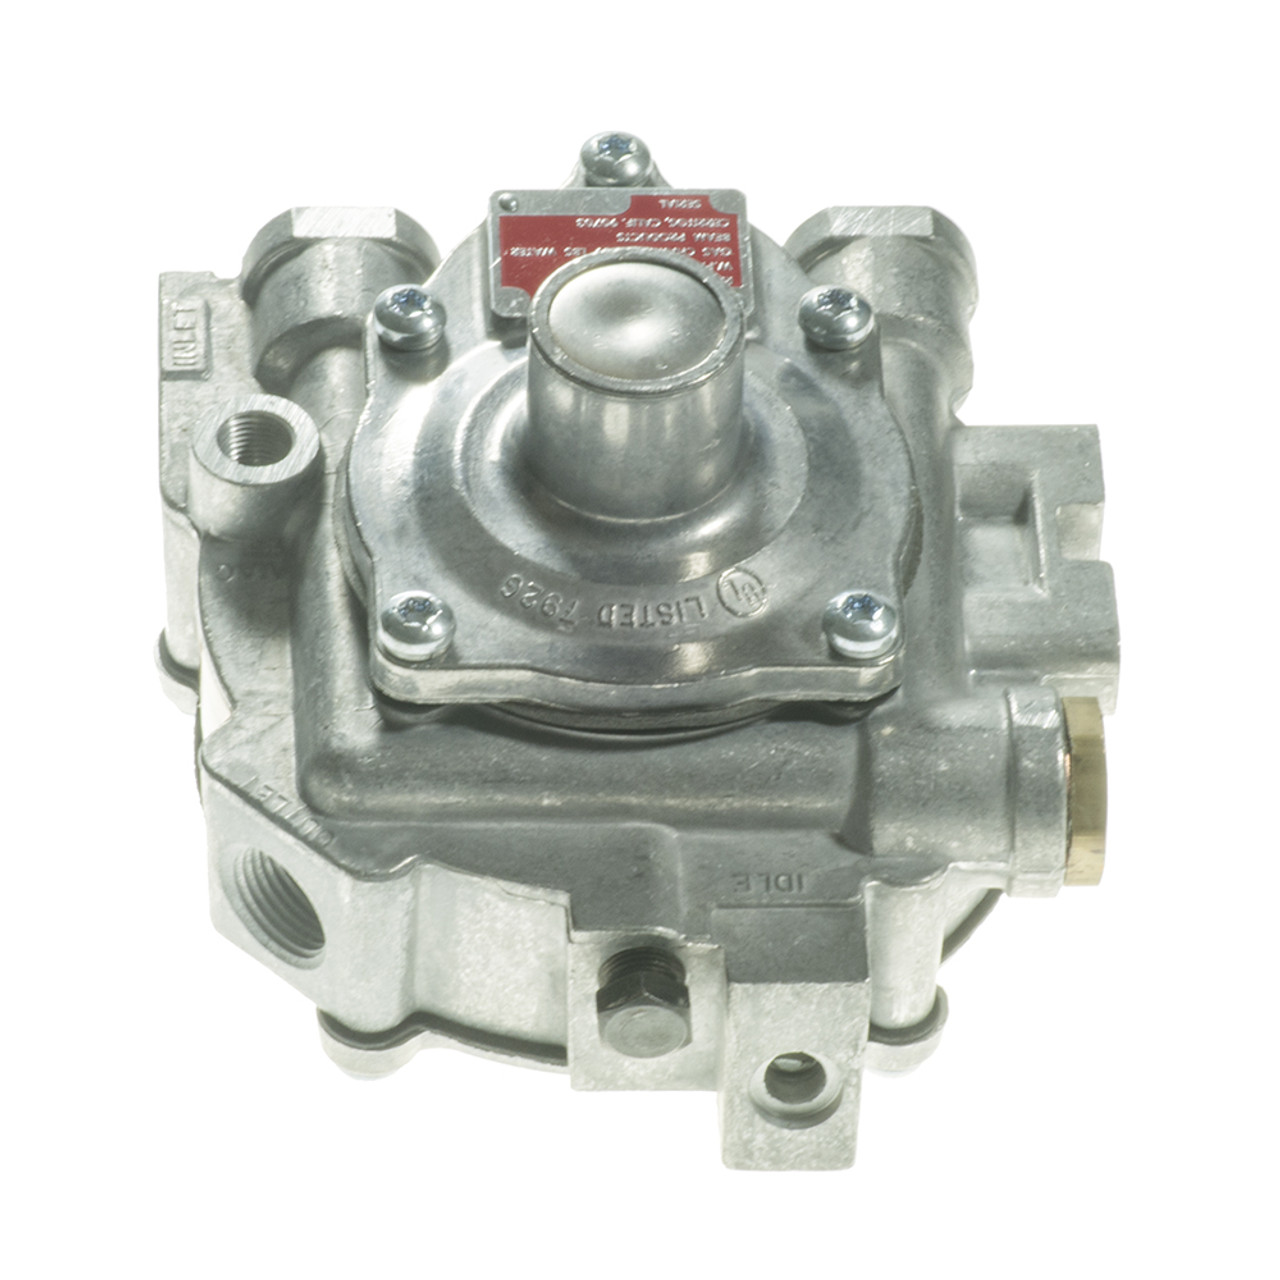 ... Impco Beam T60A propane forklift gas reducer ...